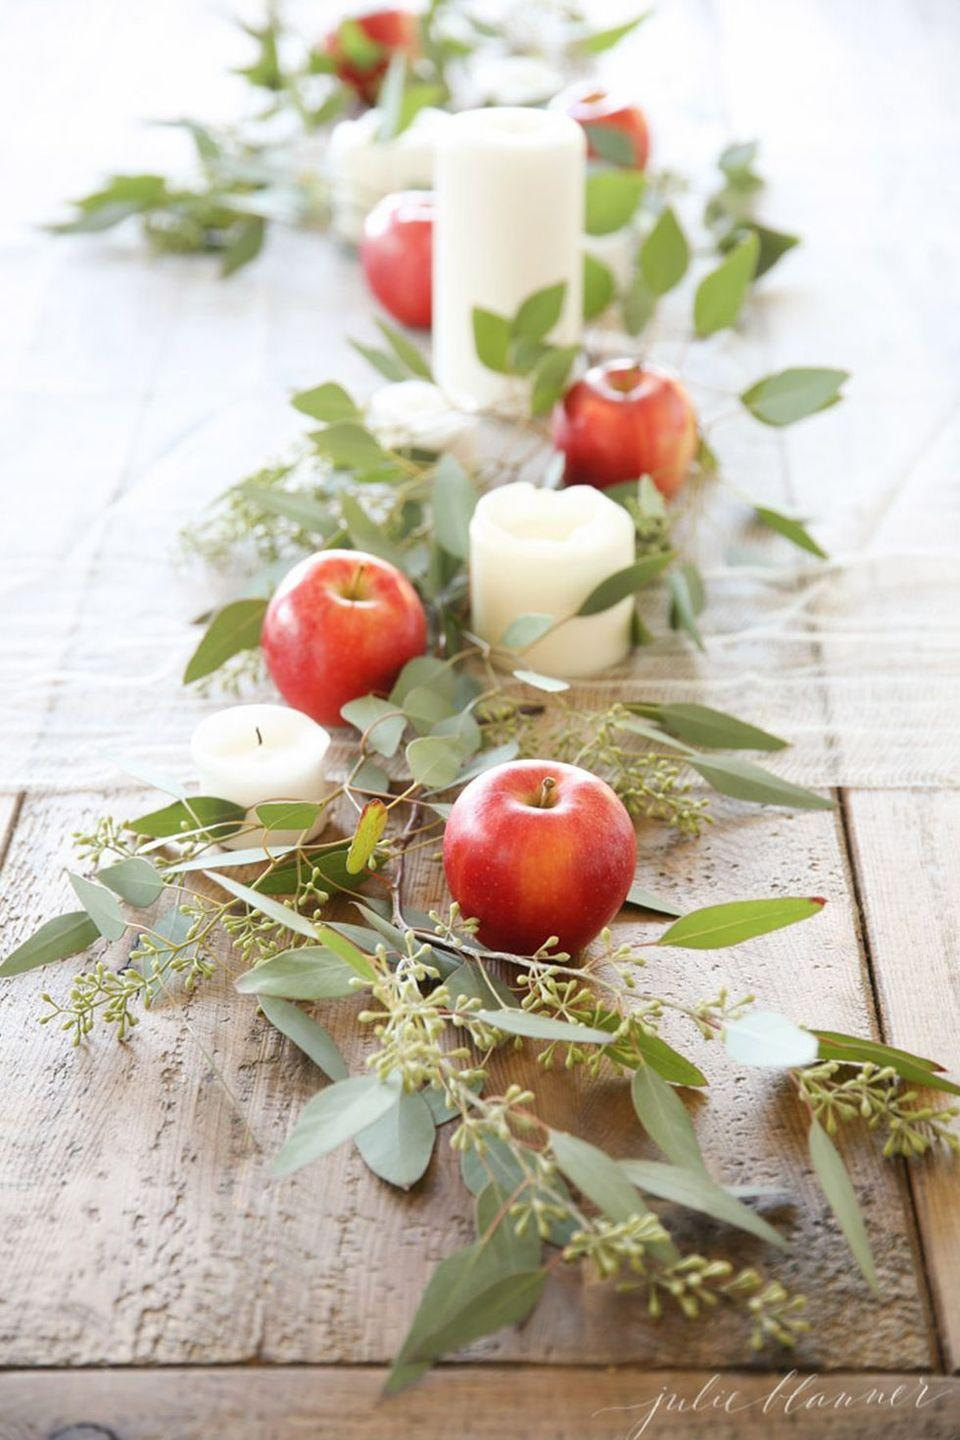 """<p>We love the idea of incorporating the fall harvest in your Thanksgiving tablescape. Freshly-picked apples, leaves and branches cut from your own backyard, and a few pillar candles work together to create a look that's as elegant as it is inexpensive.</p><p><strong>Get the tutorial at <a href=""""https://julieblanner.com/easy-entertaining-ideas-for-fall/"""" rel=""""nofollow noopener"""" target=""""_blank"""" data-ylk=""""slk:Julie Blanner"""" class=""""link rapid-noclick-resp"""">Julie Blanner</a>.</strong></p><p><a class=""""link rapid-noclick-resp"""" href=""""https://www.amazon.com/Mega-Candles-Unscented-Receptions-Celebrations/dp/B00ATGA136?tag=syn-yahoo-20&ascsubtag=%5Bartid%7C10050.g.2130%5Bsrc%7Cyahoo-us"""" rel=""""nofollow noopener"""" target=""""_blank"""" data-ylk=""""slk:SHOP WHITE CANDLES"""">SHOP WHITE CANDLES</a></p>"""